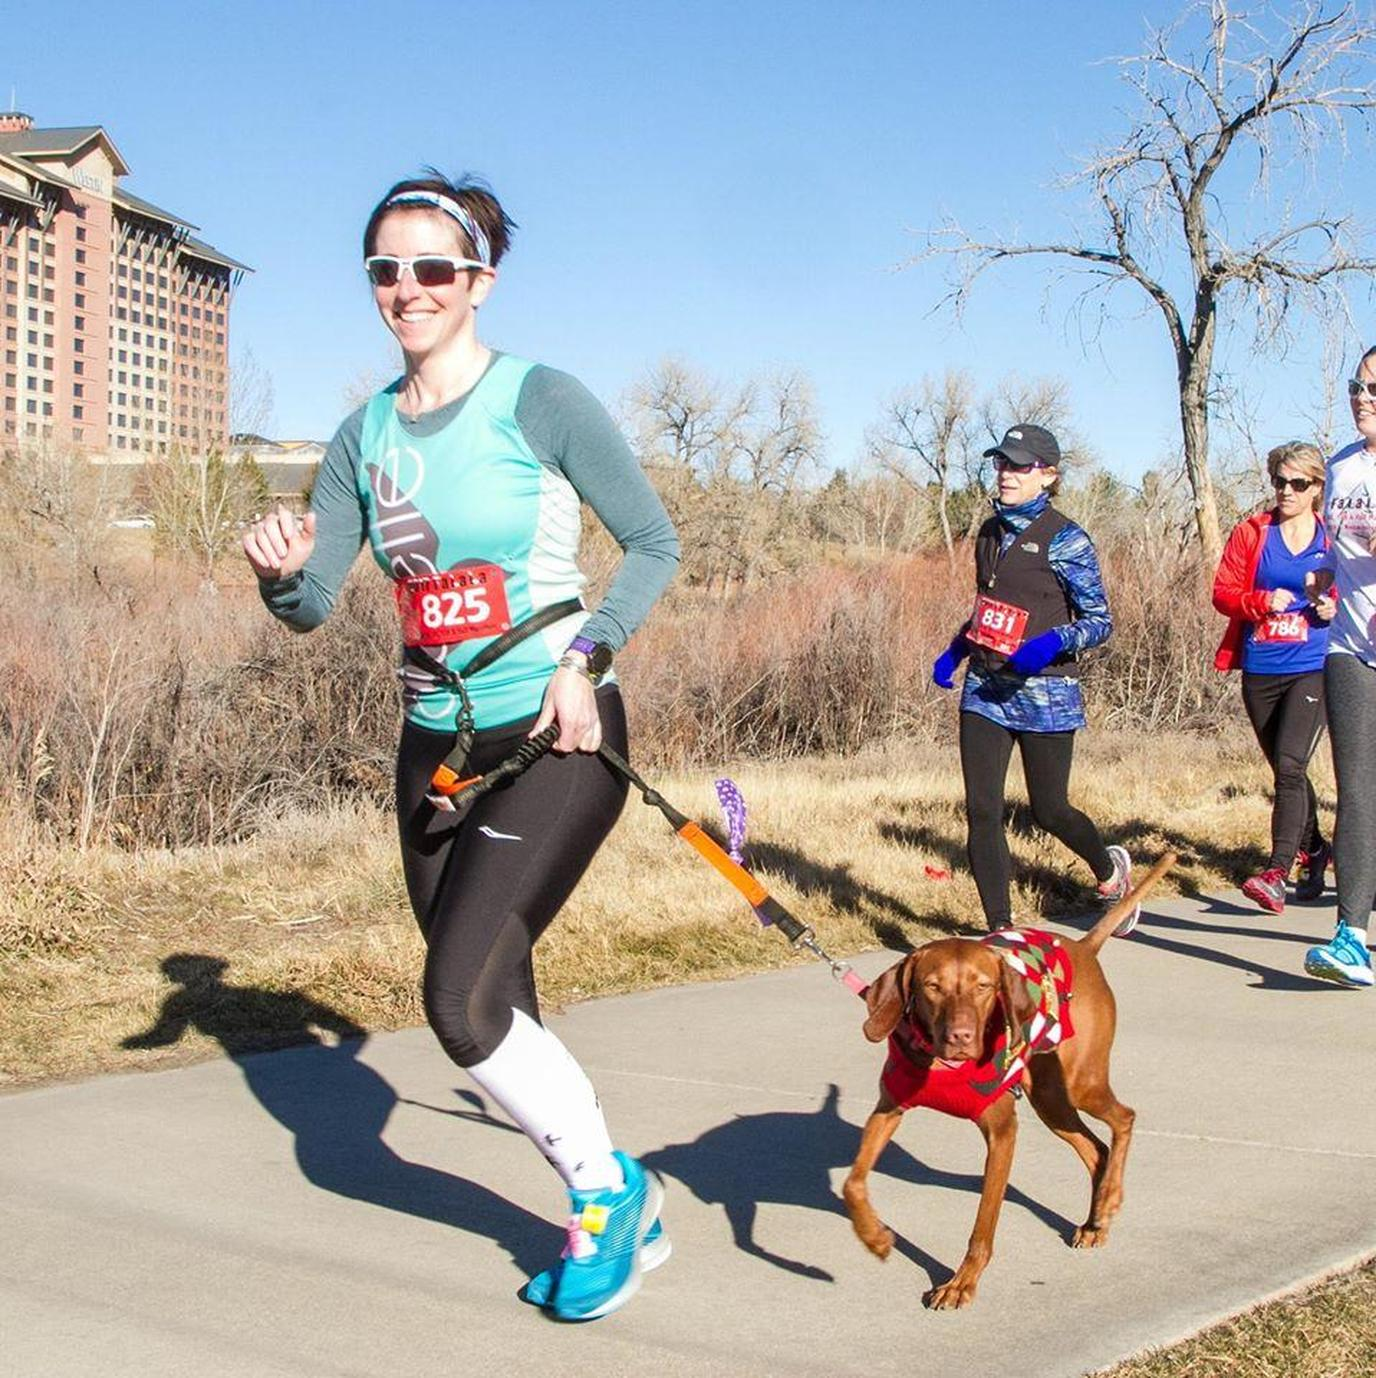 A Woman Runs With Her Dog in a Pet-Friendly Christmas Race in Colorado.